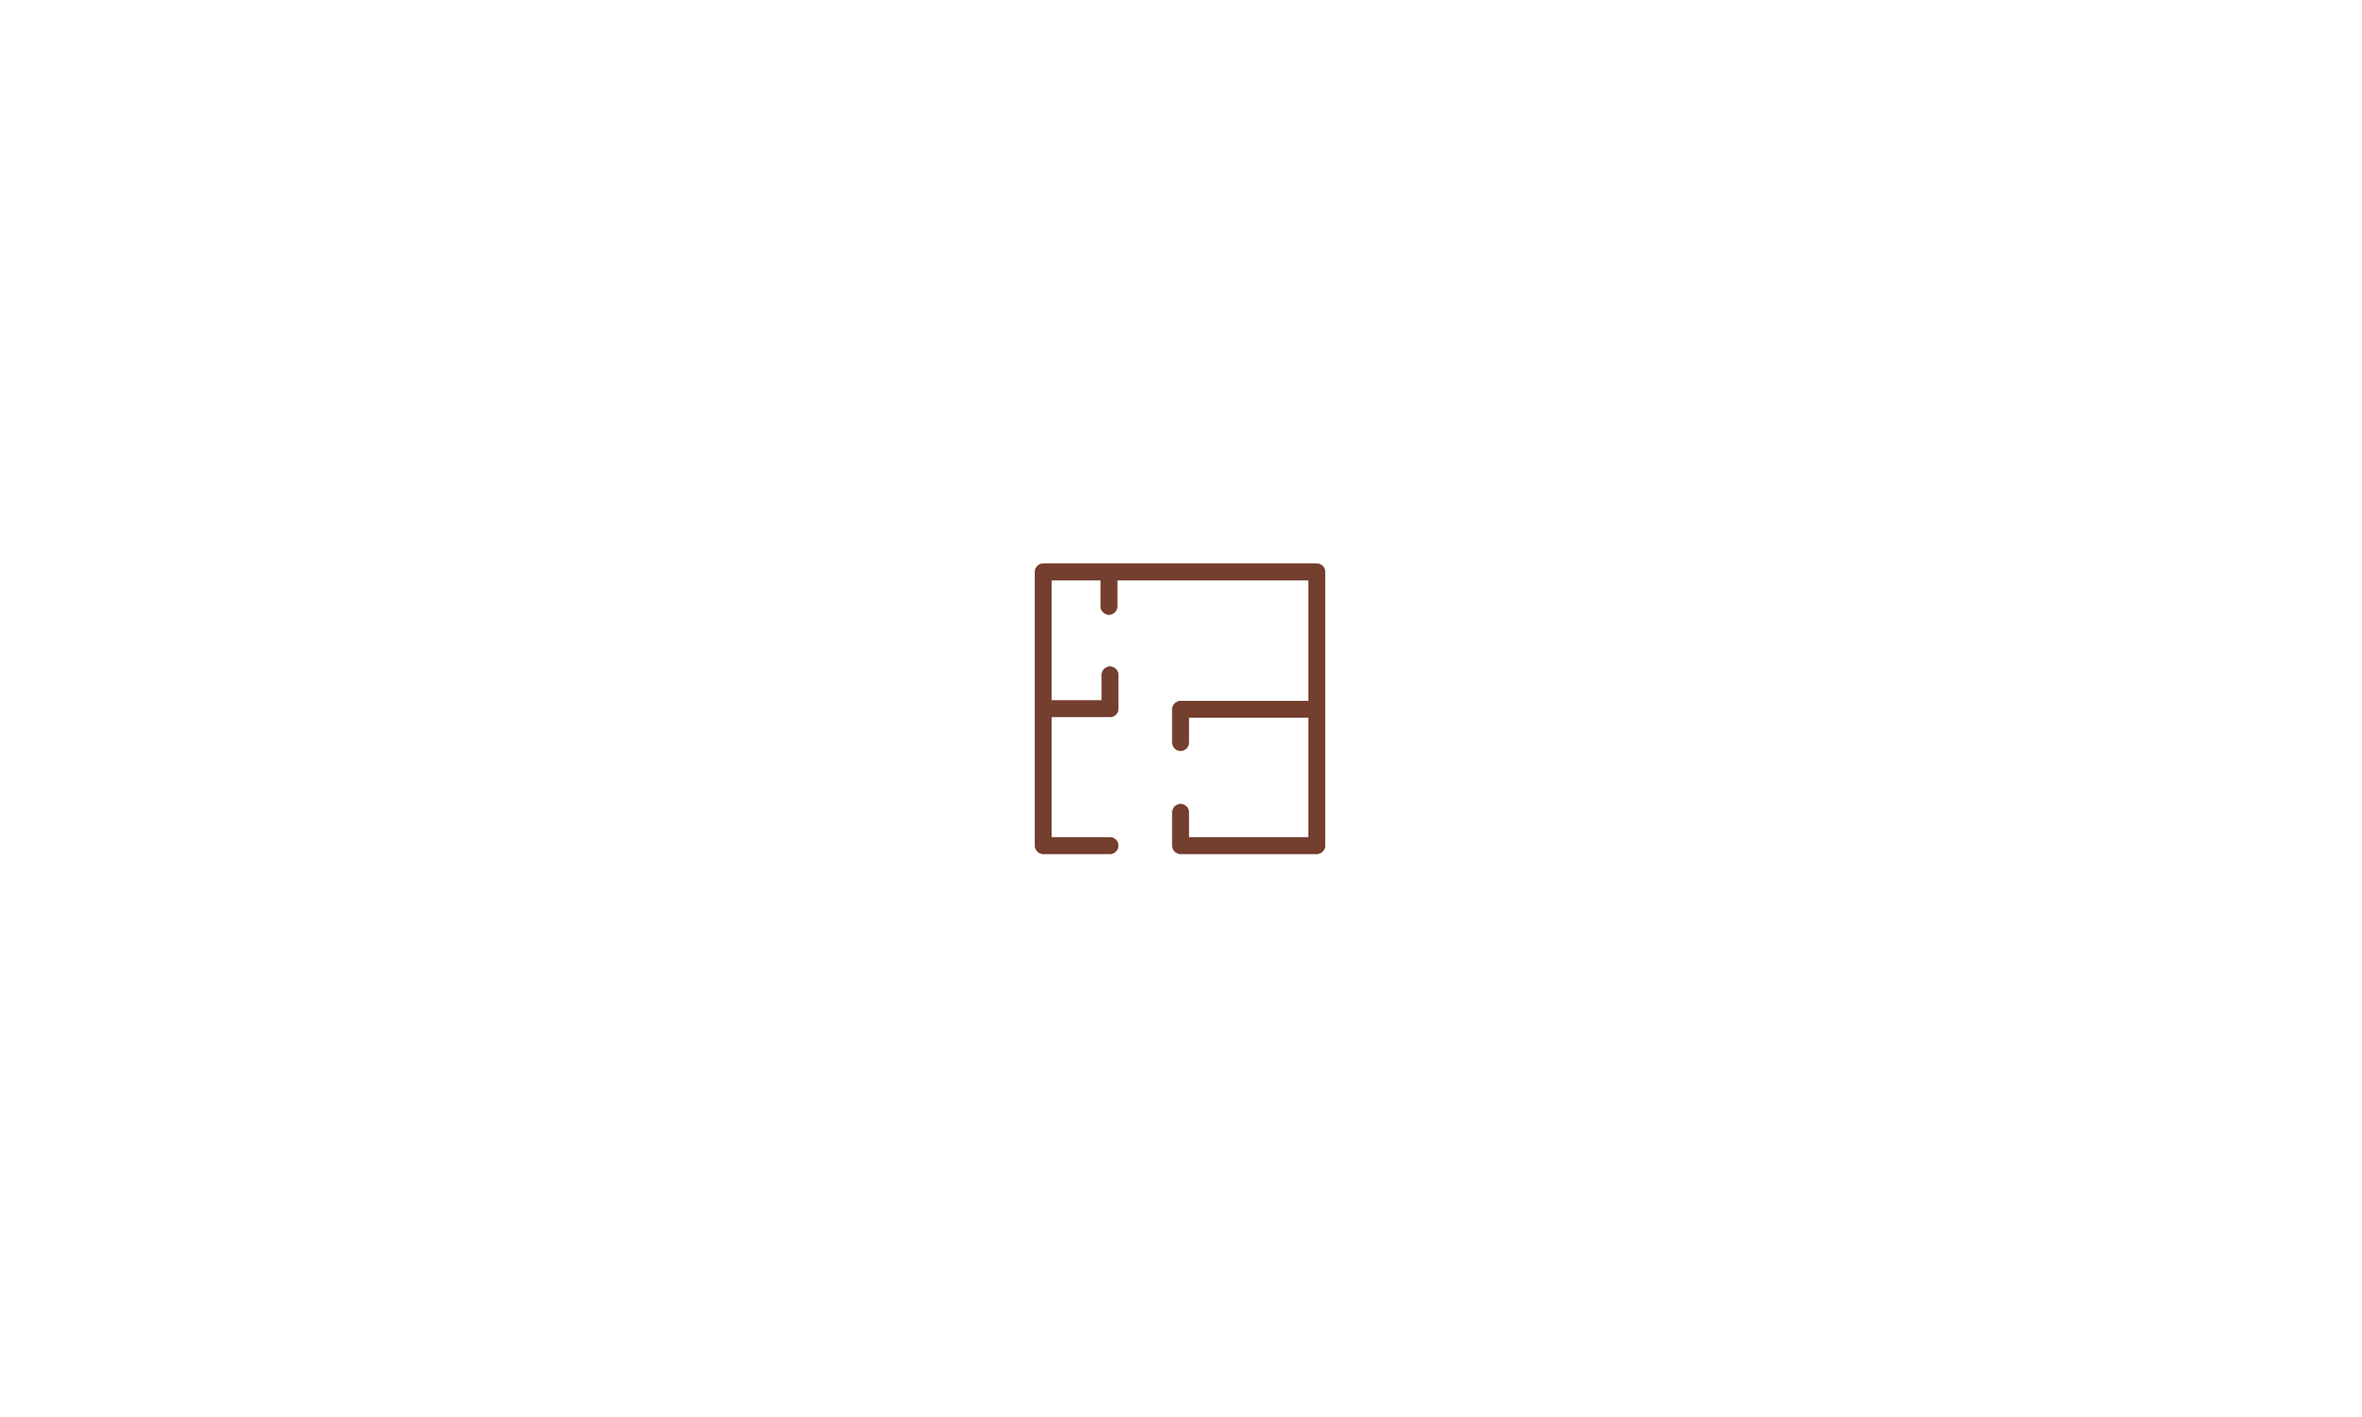 symbol_your_project_brown_space.png